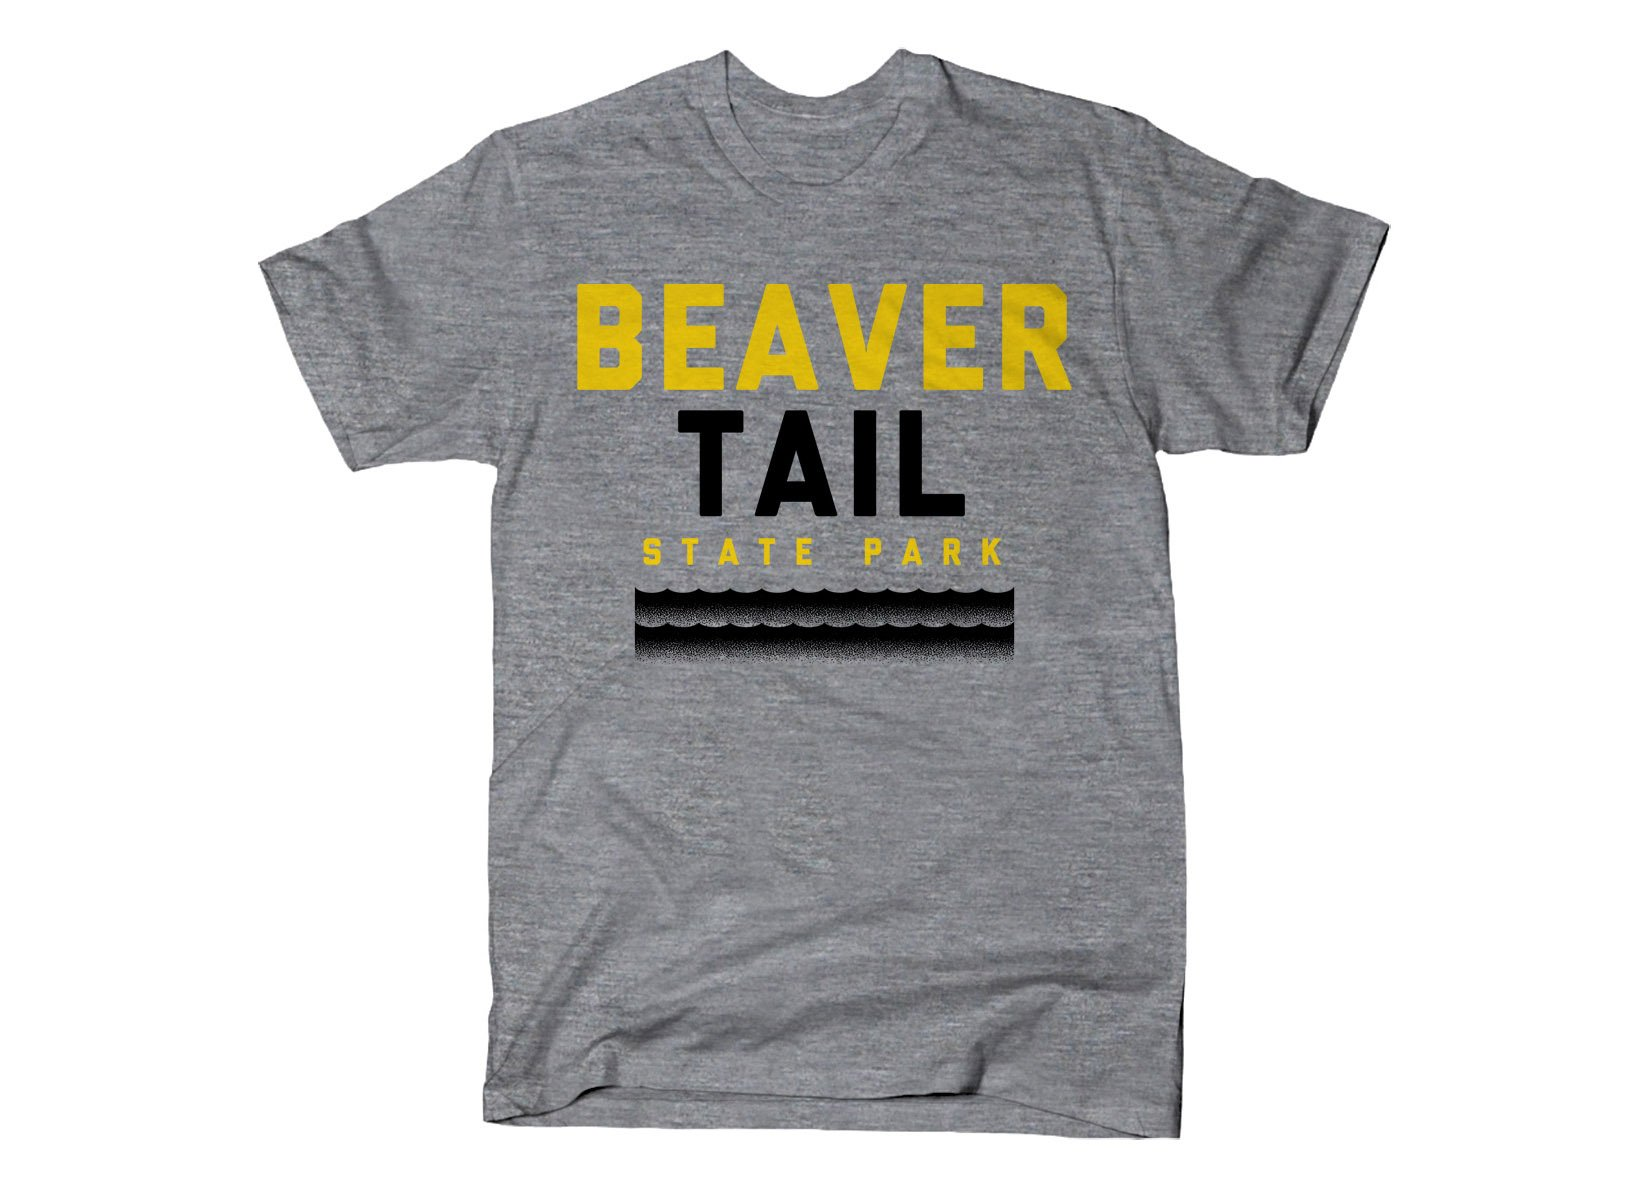 Beaver Tail on Mens T-Shirt